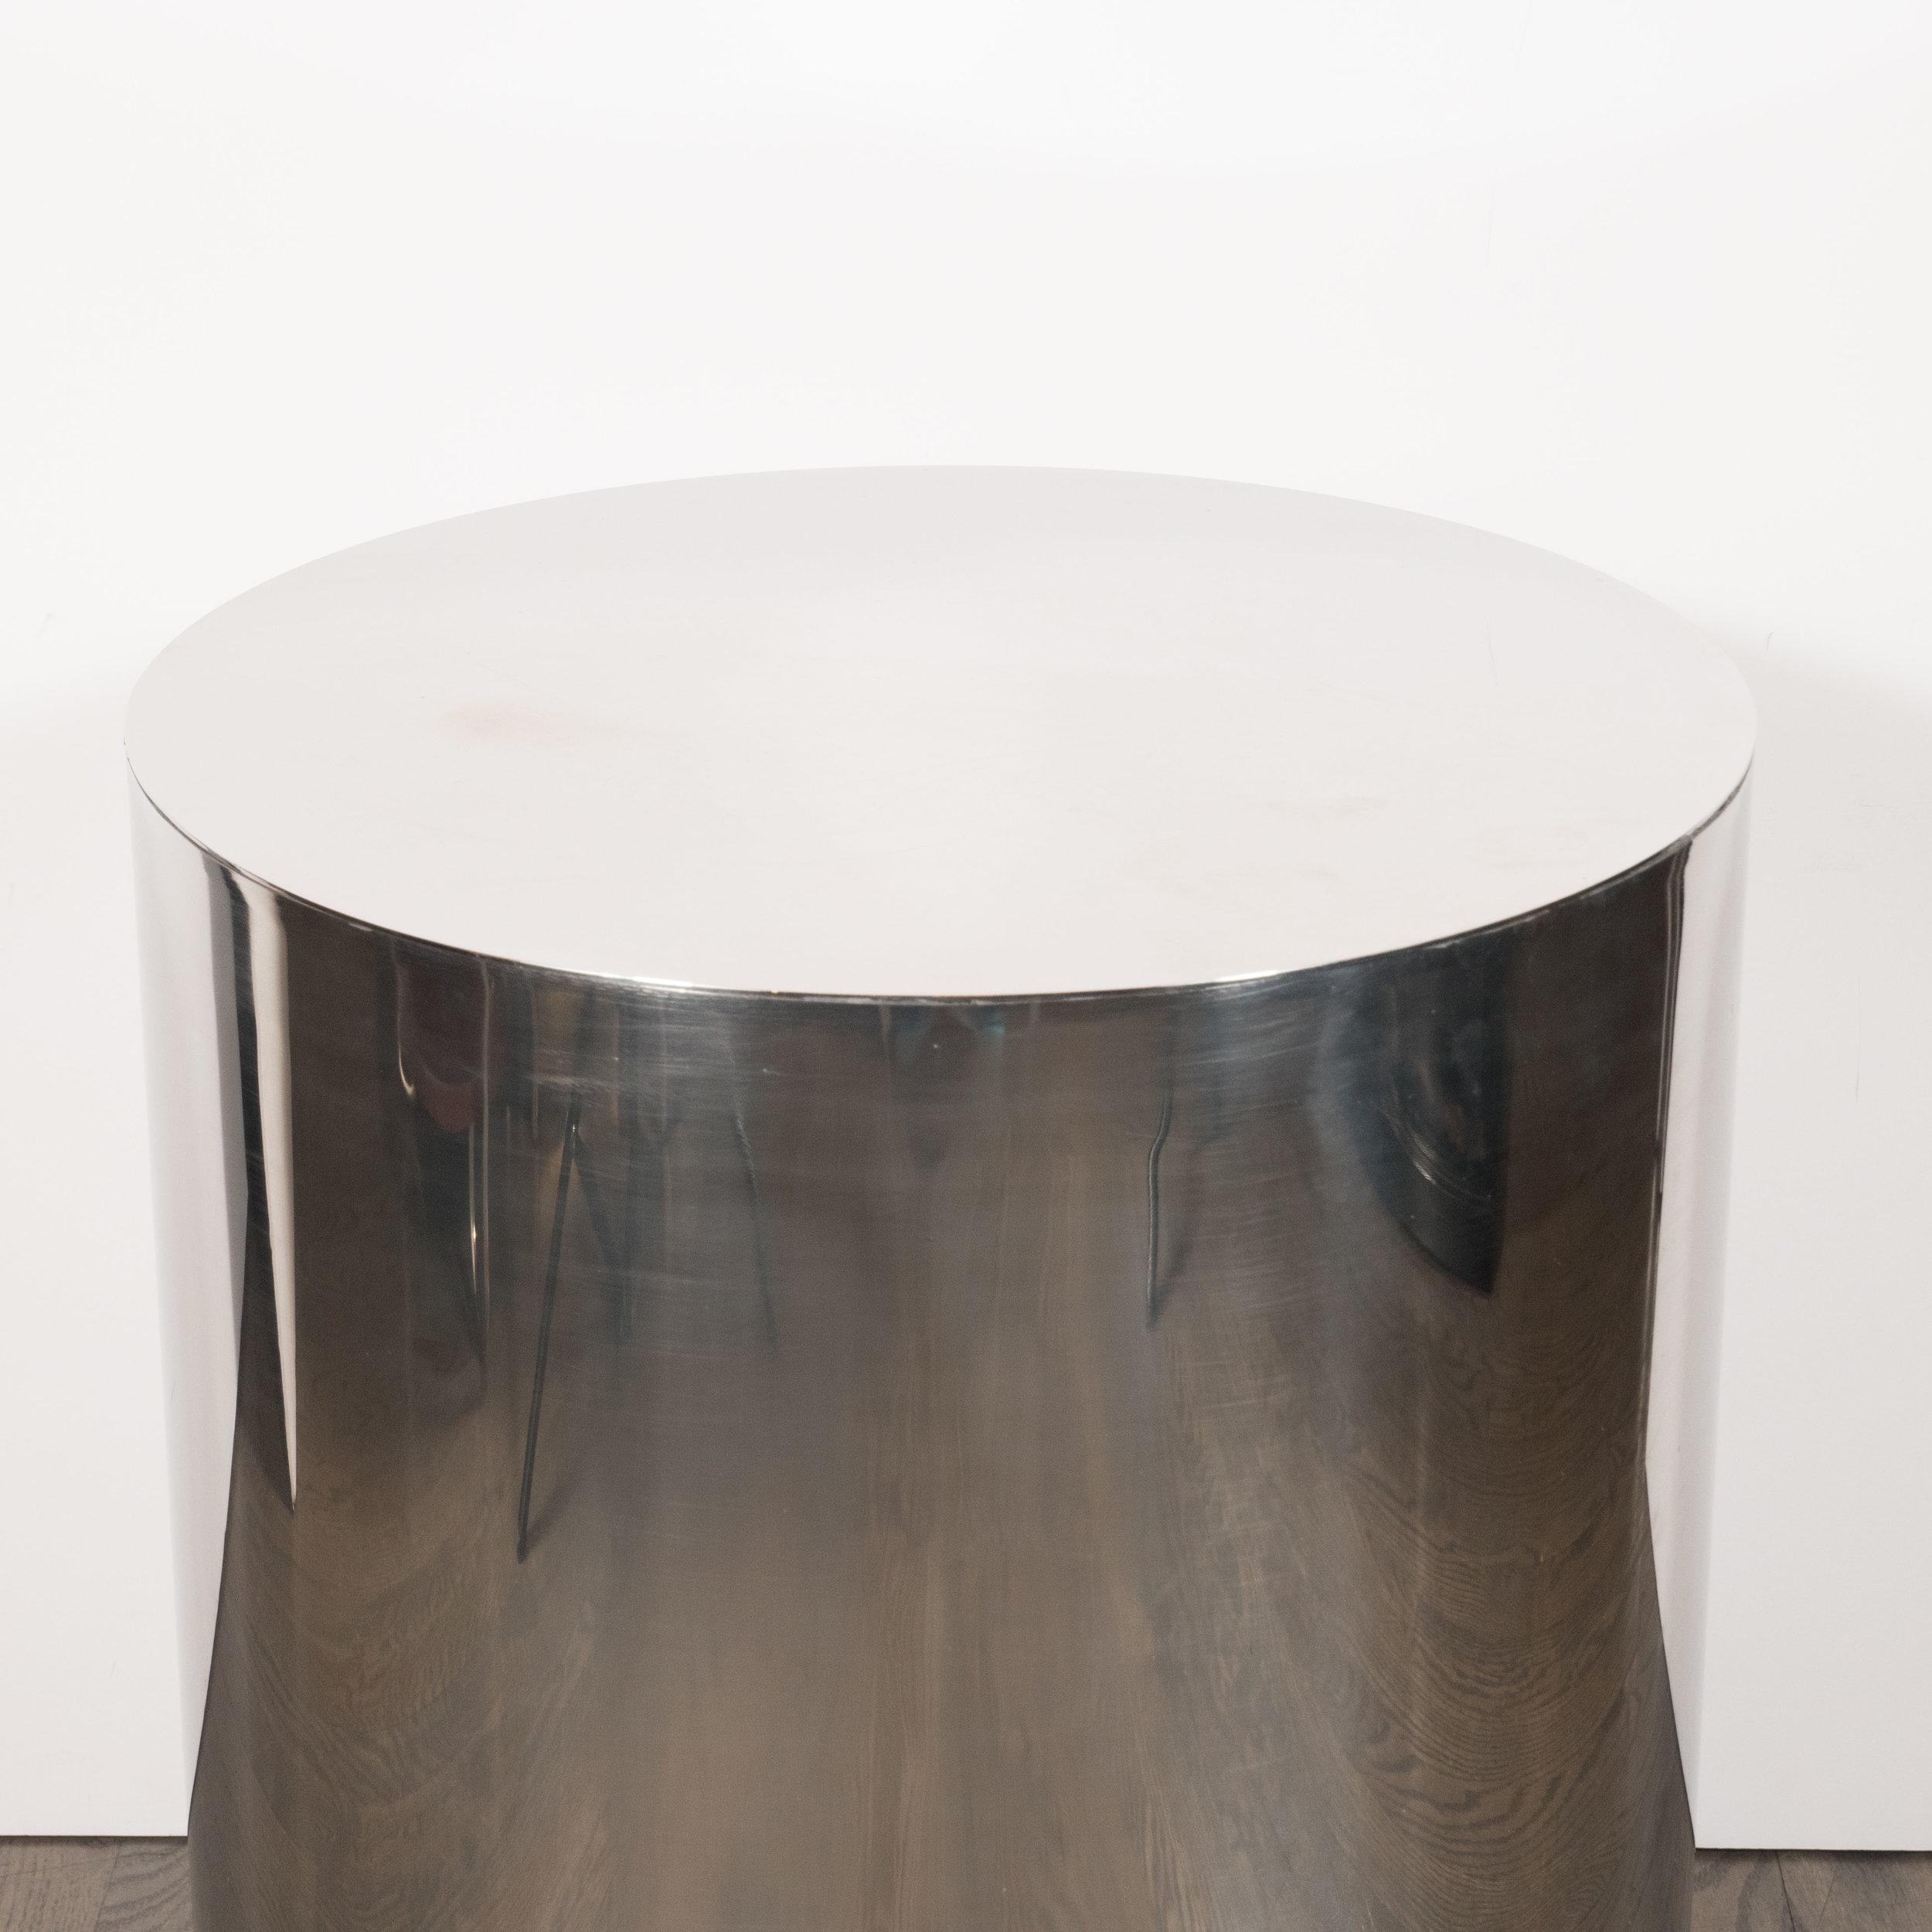 Objet Deco Chrome American Mid Century Modern Cylindrical Chrome Side Table Pedestal